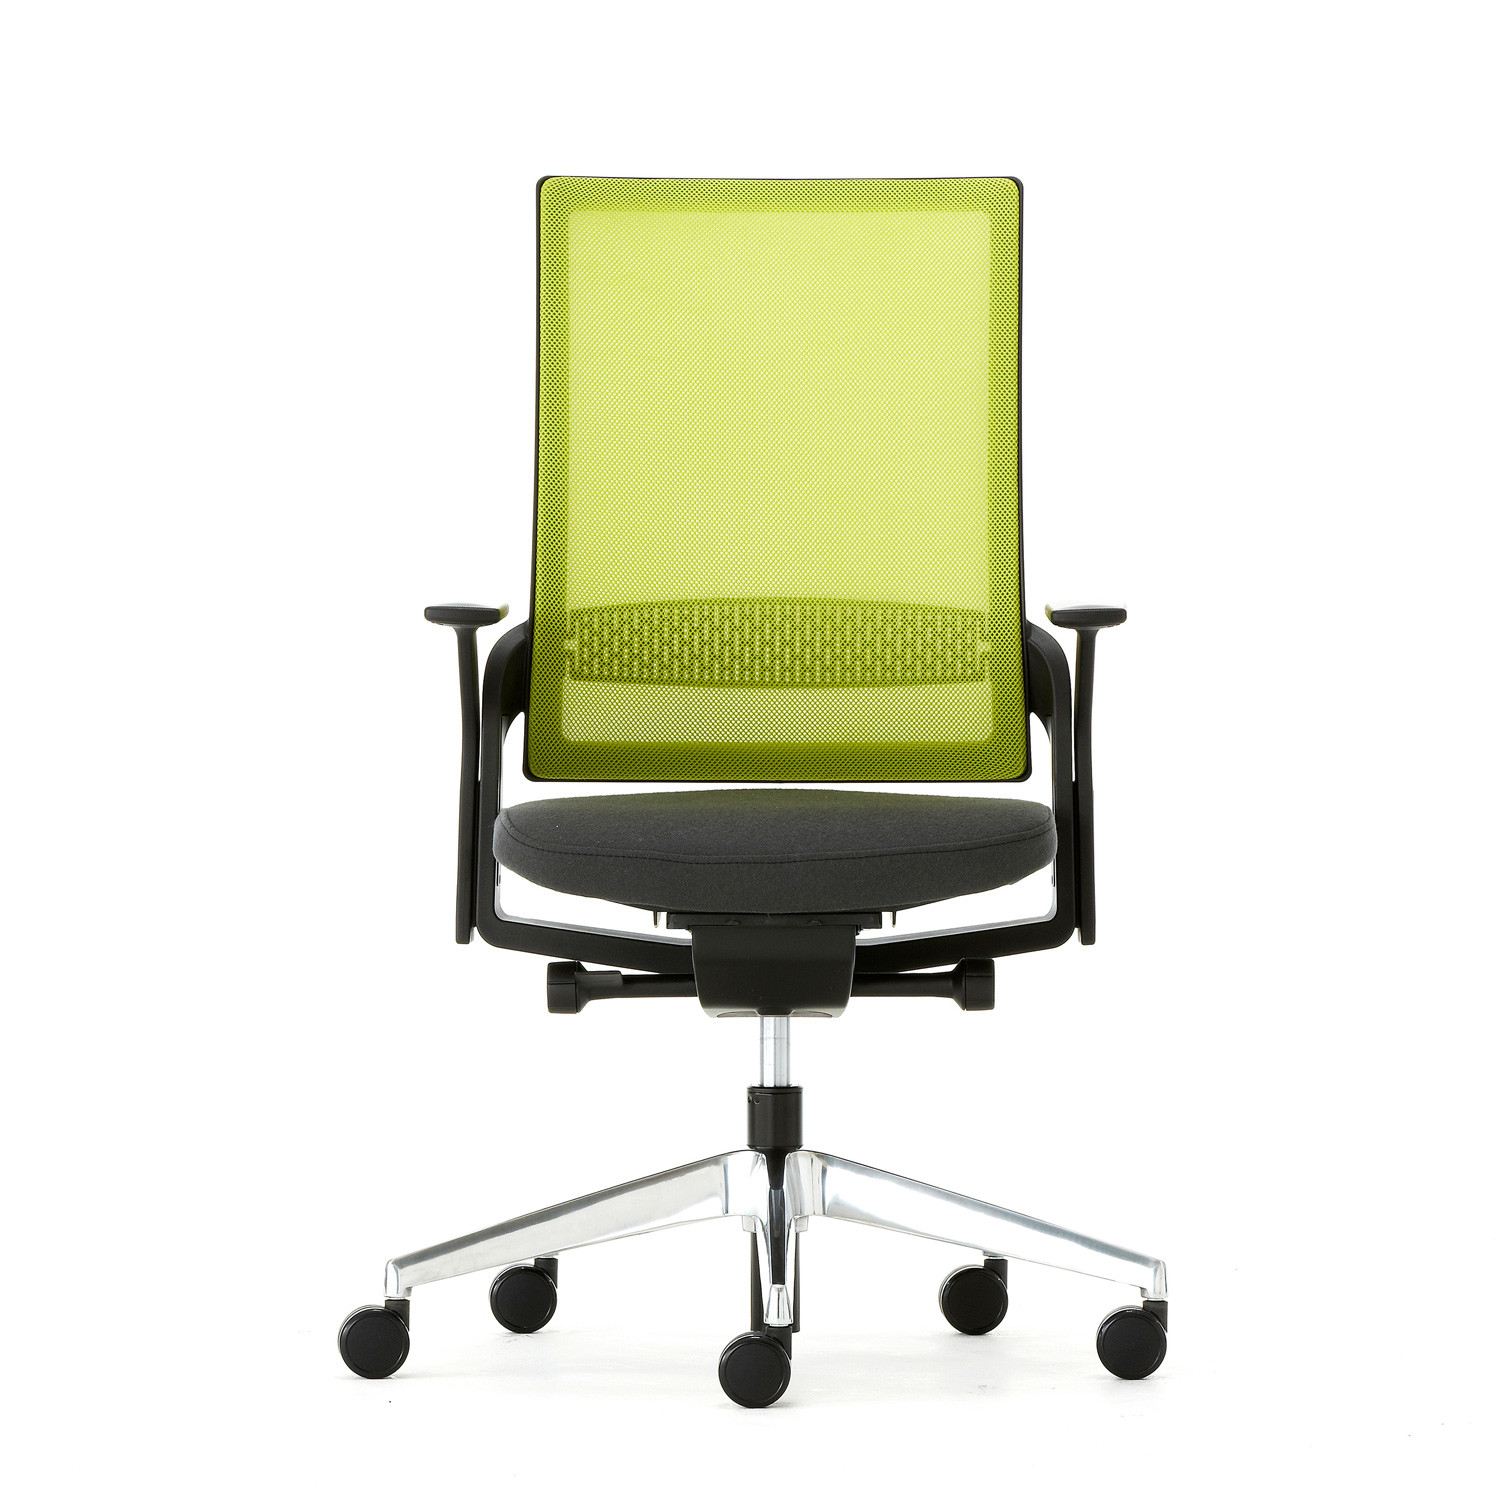 Ecoflex Mesh Office Chair